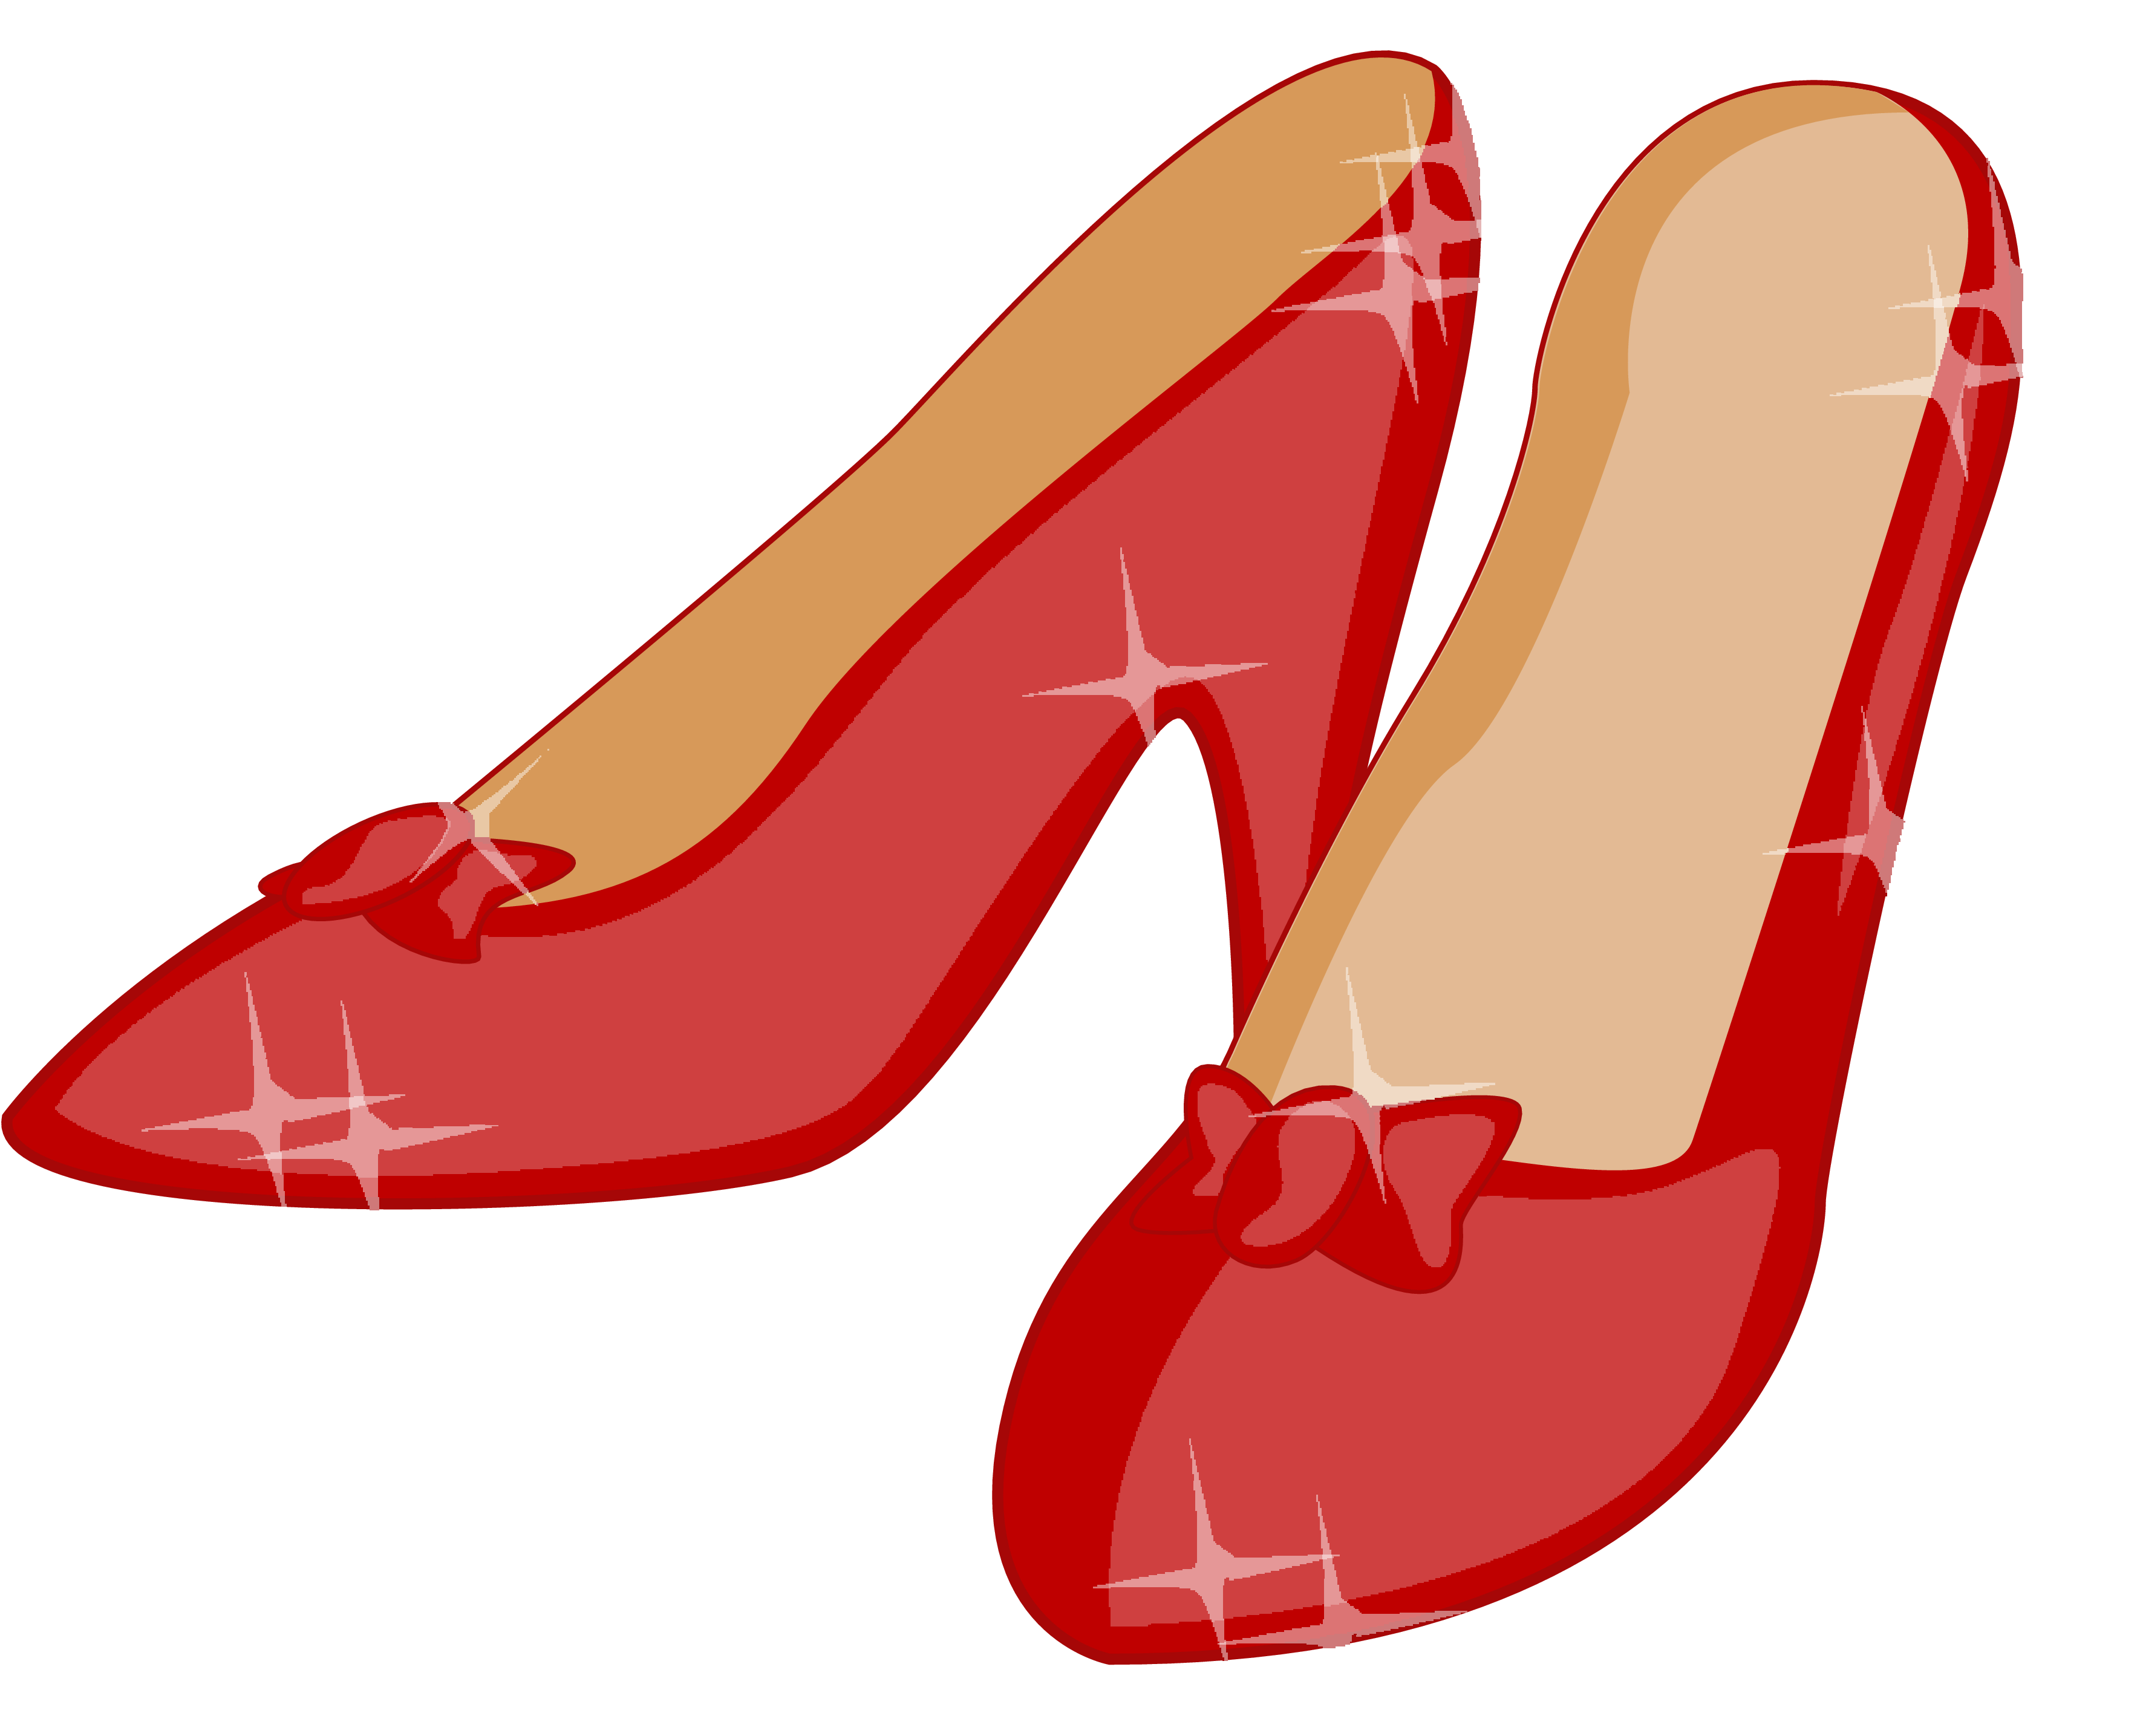 Ruby slipper graphic house. Clip shoes women's banner royalty free download